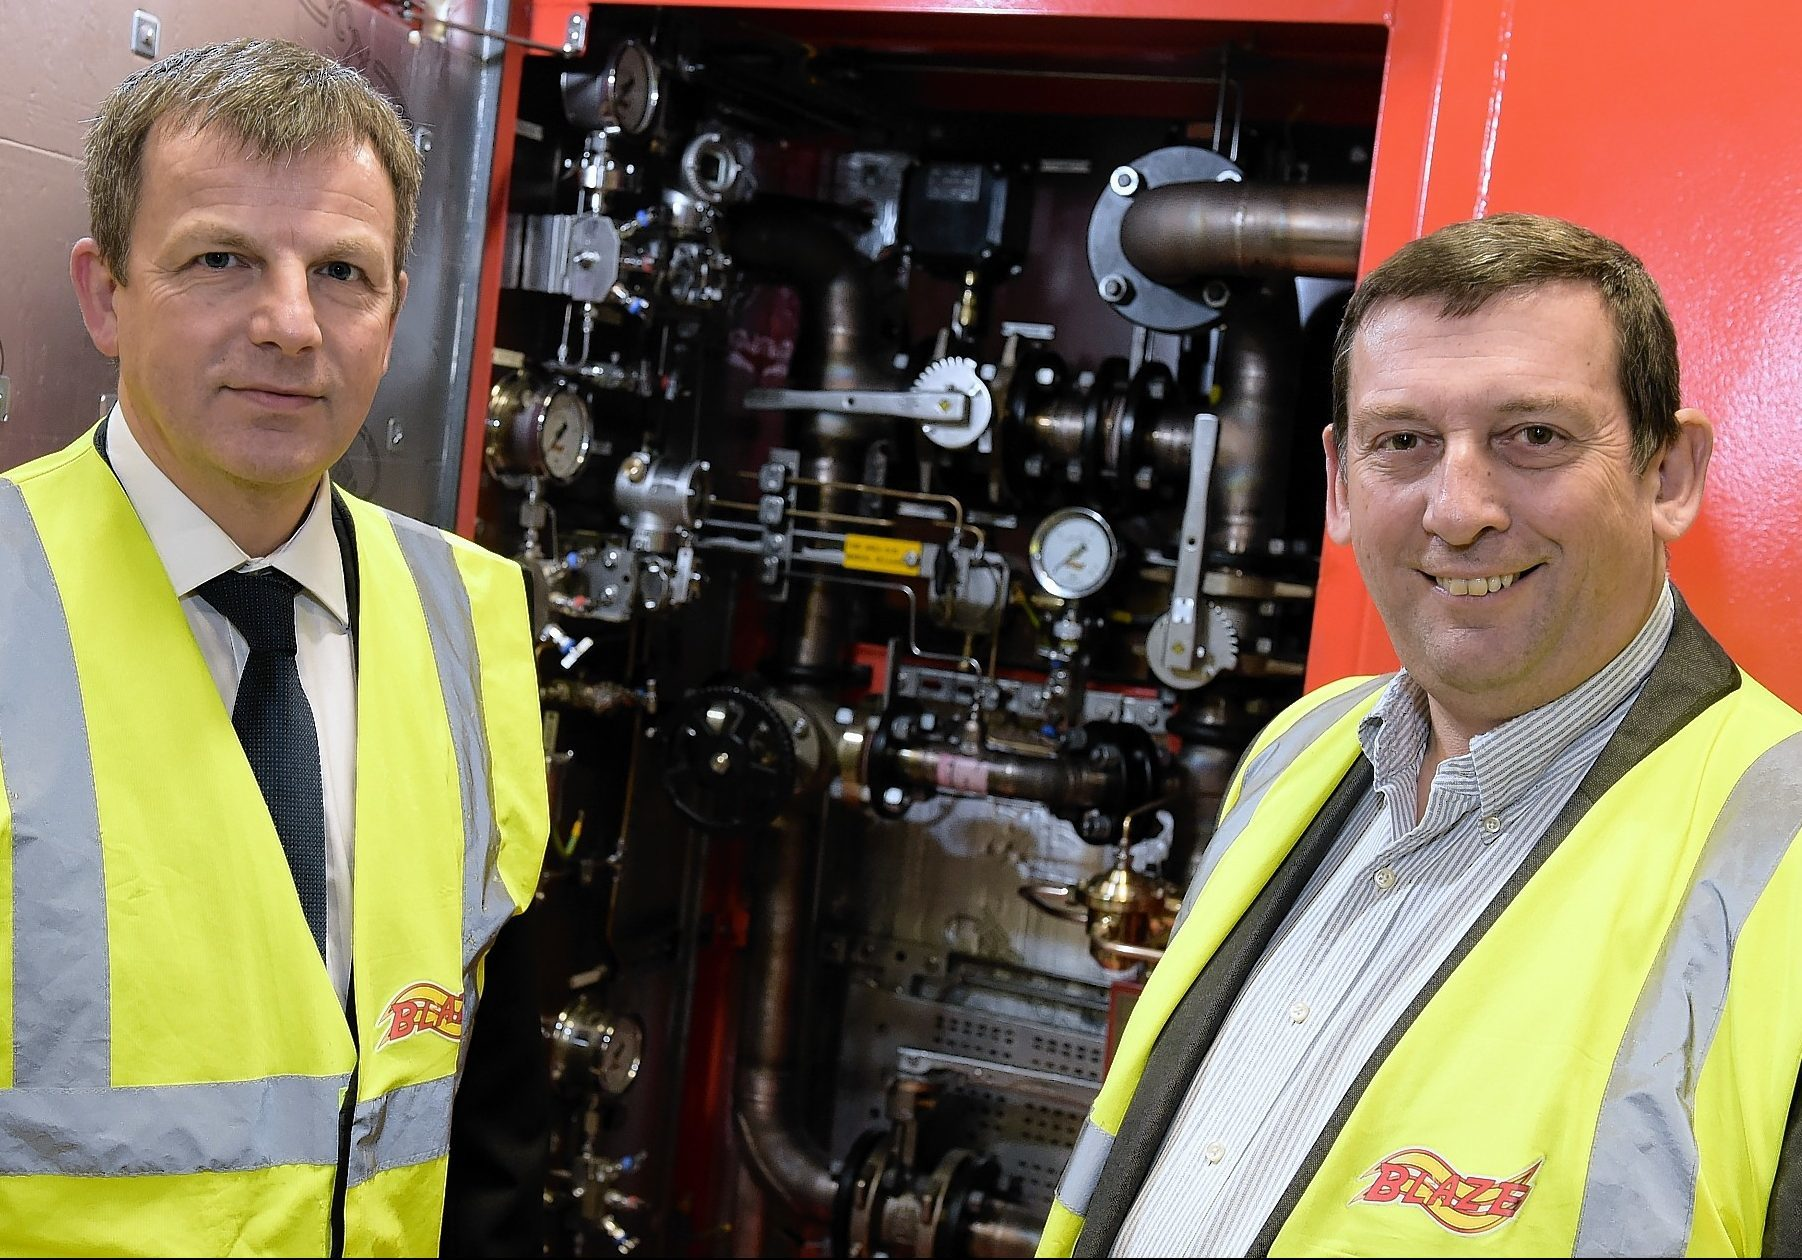 Blaze's international manager Colin Black, left, and managing director Howard Johnson.